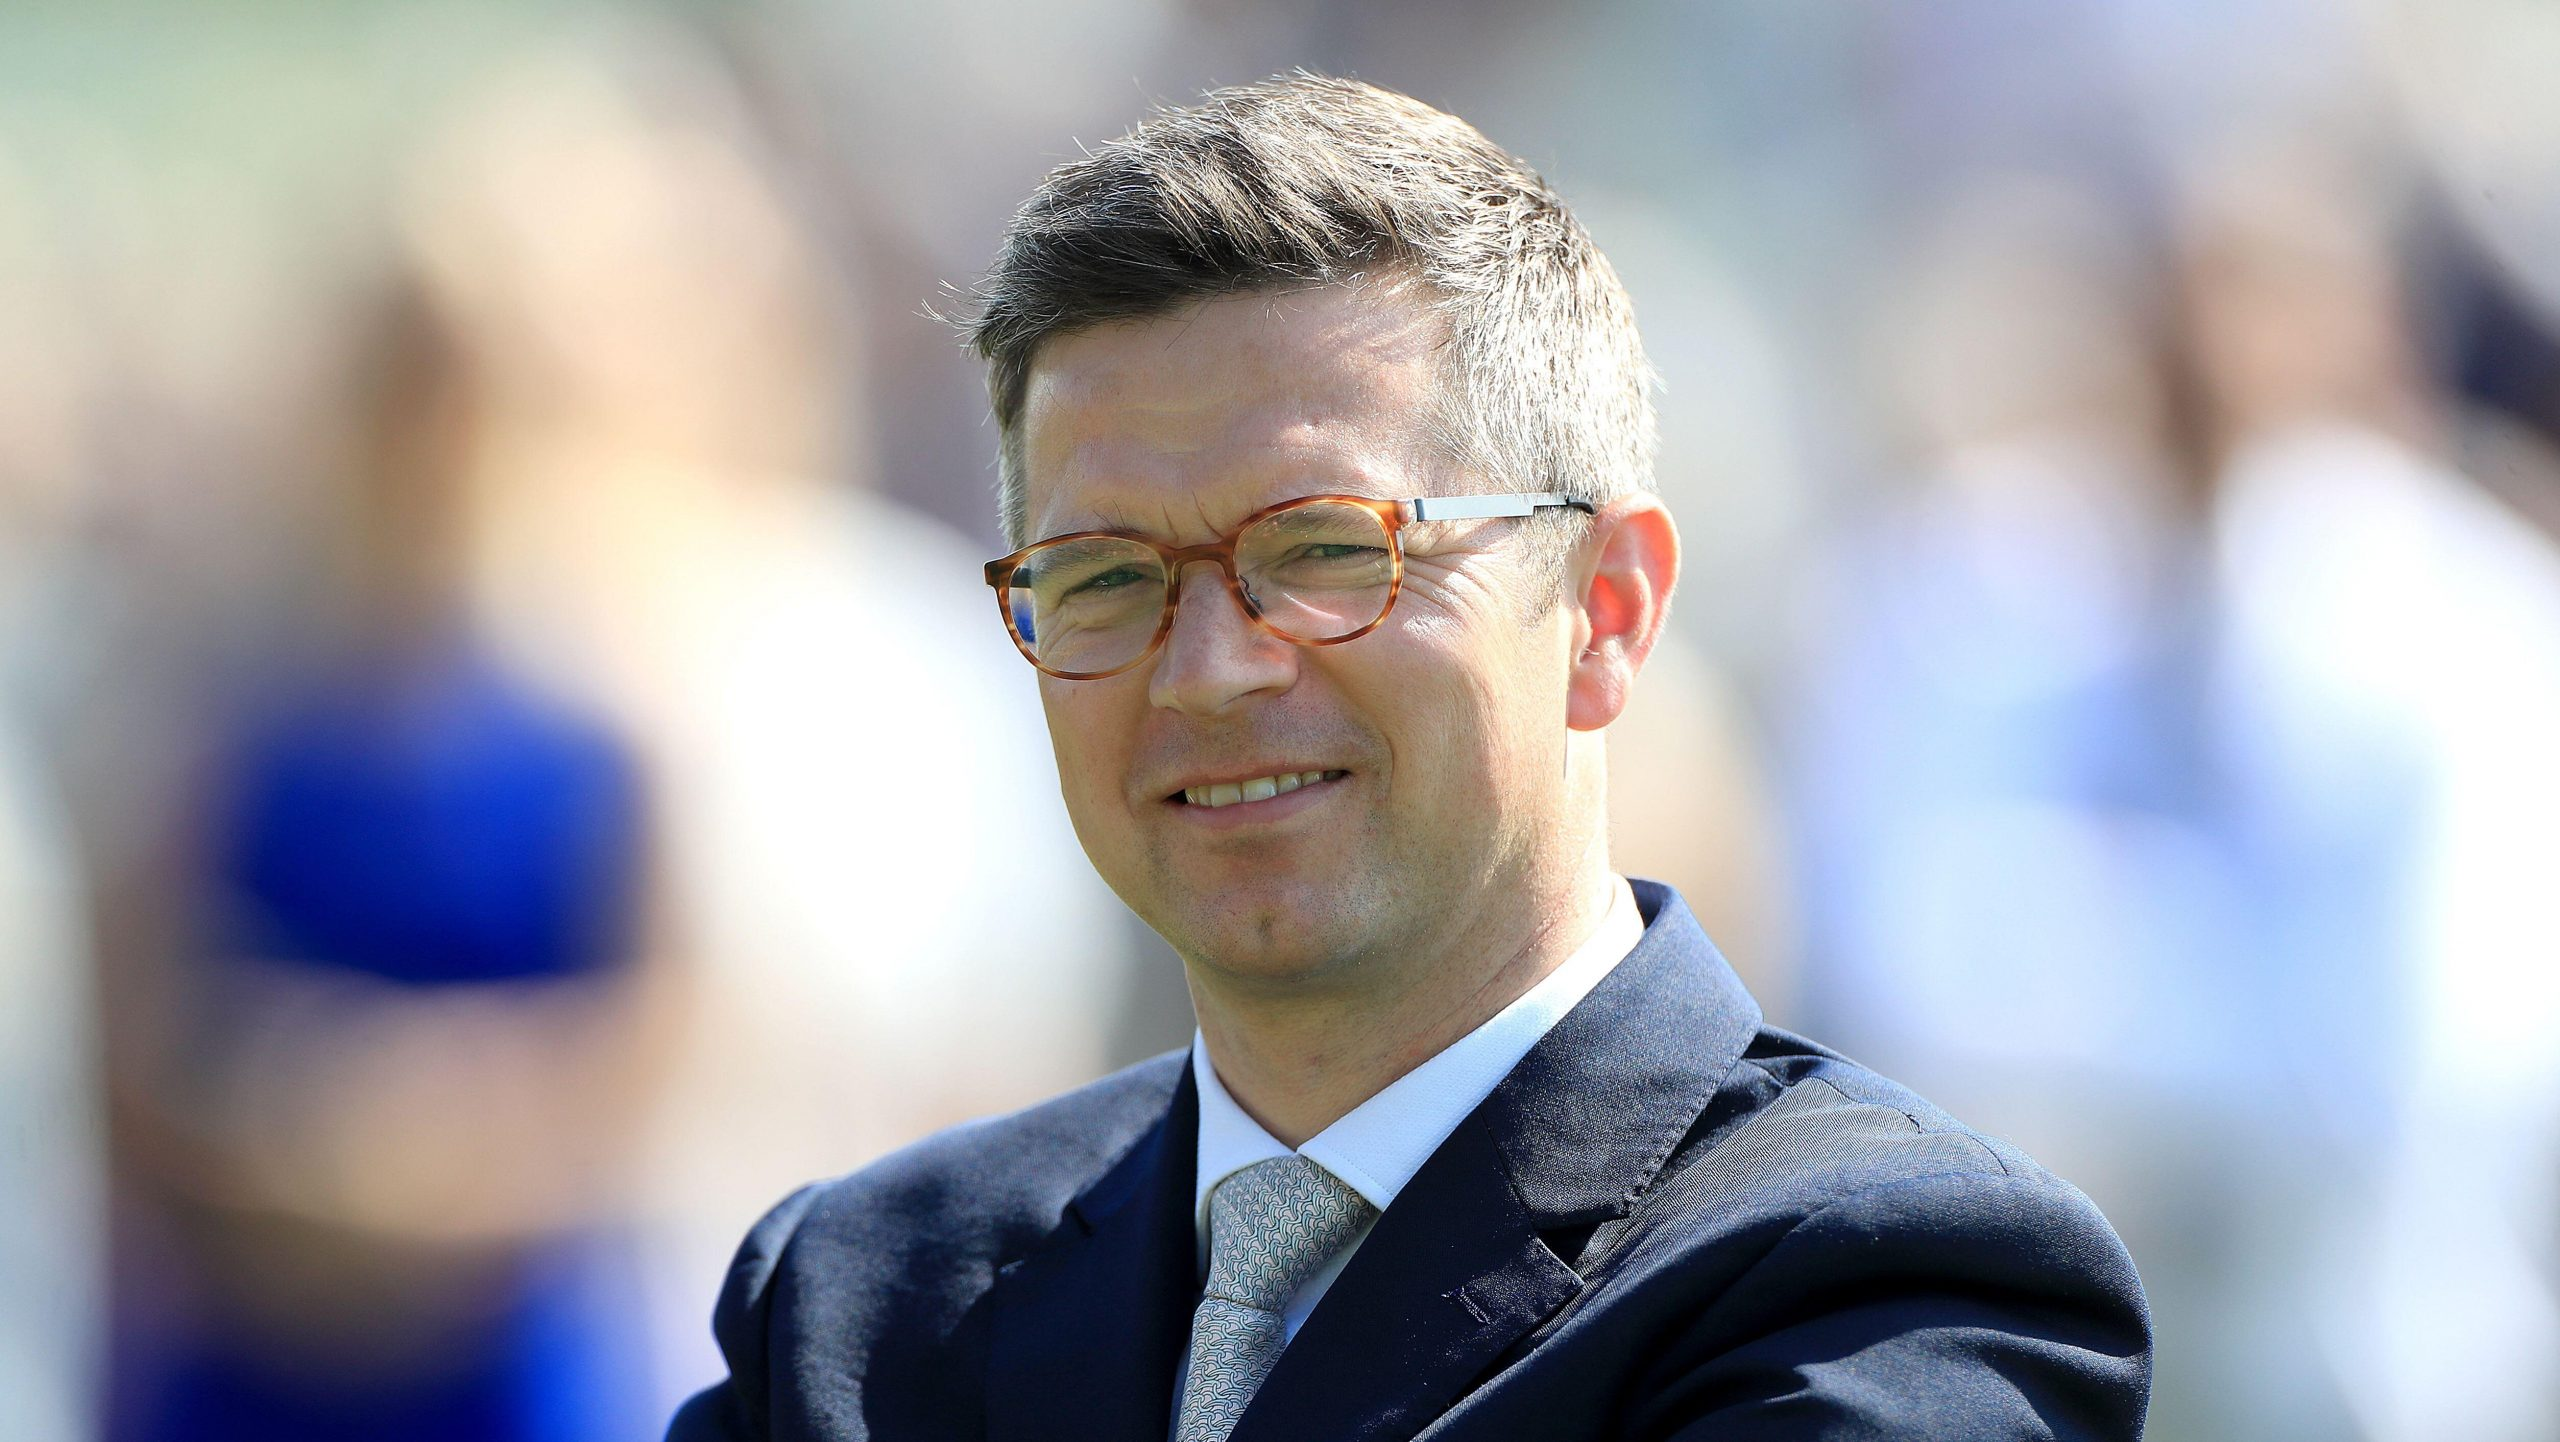 Roger Varian looks on at York Racecourse